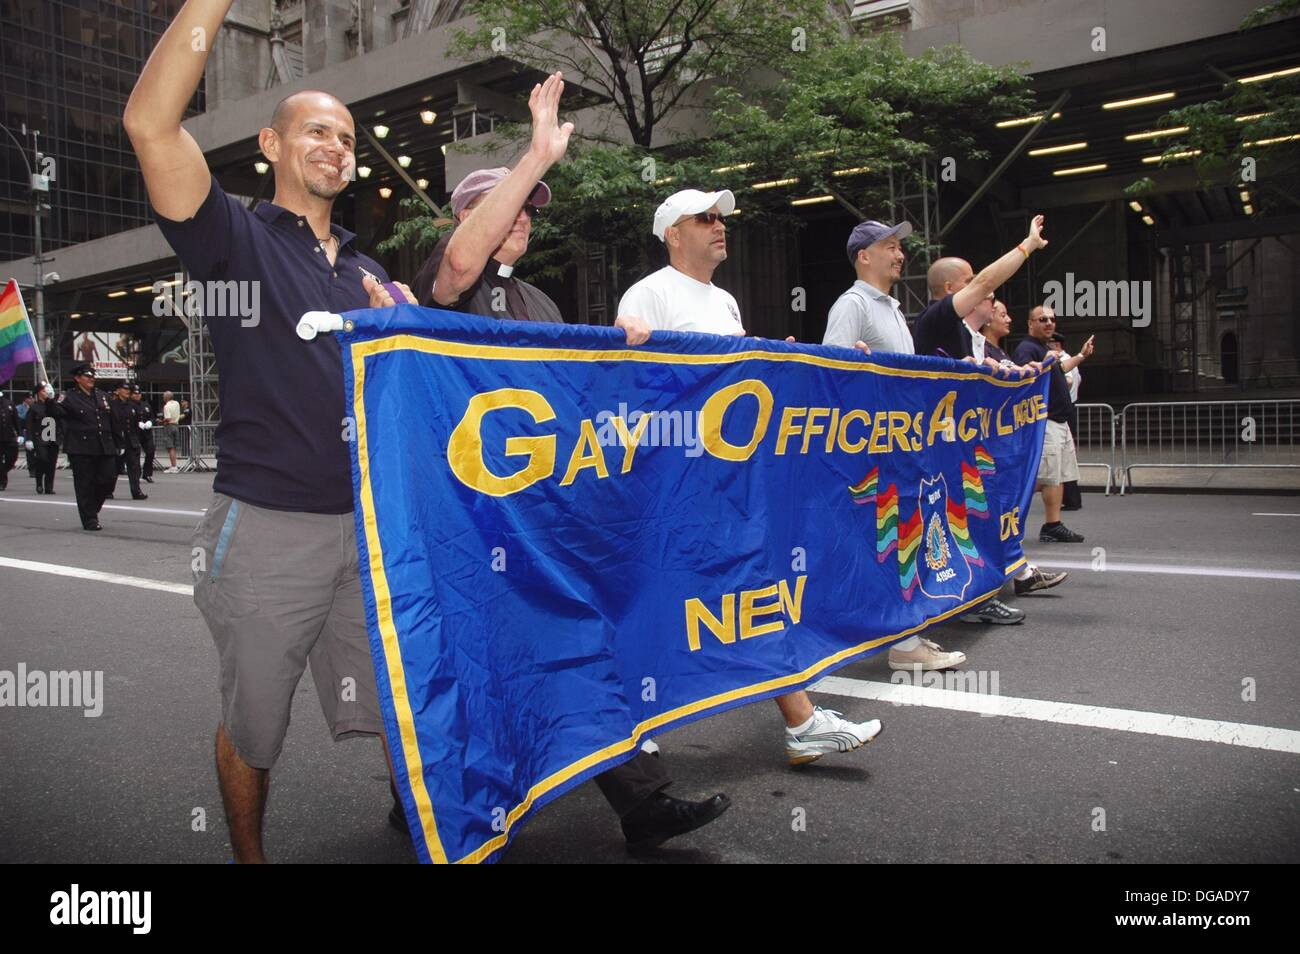 from Dangelo new york city gay police